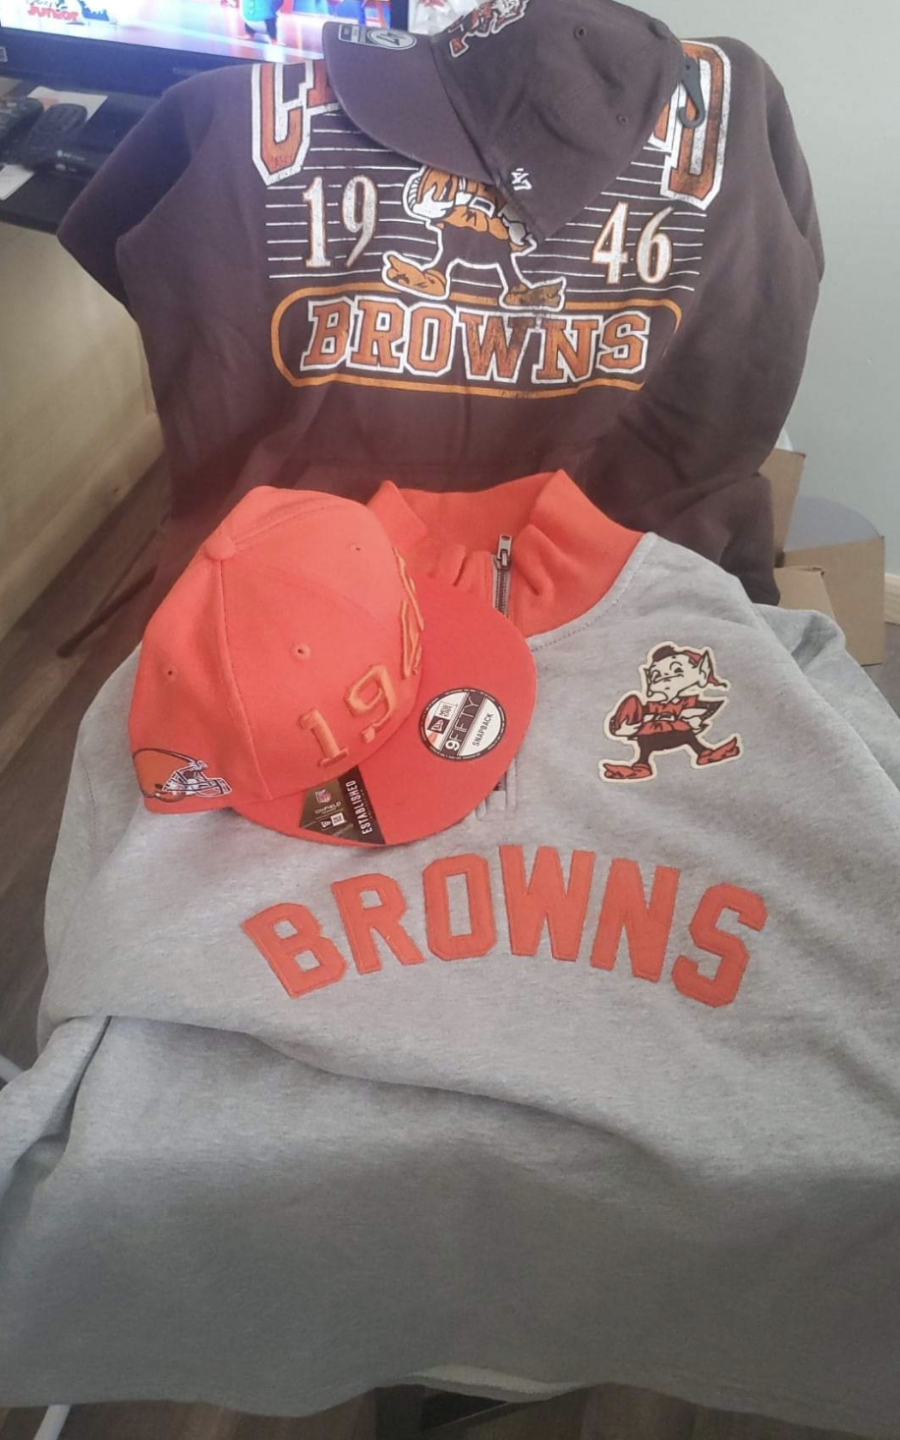 Browns gear from Stump